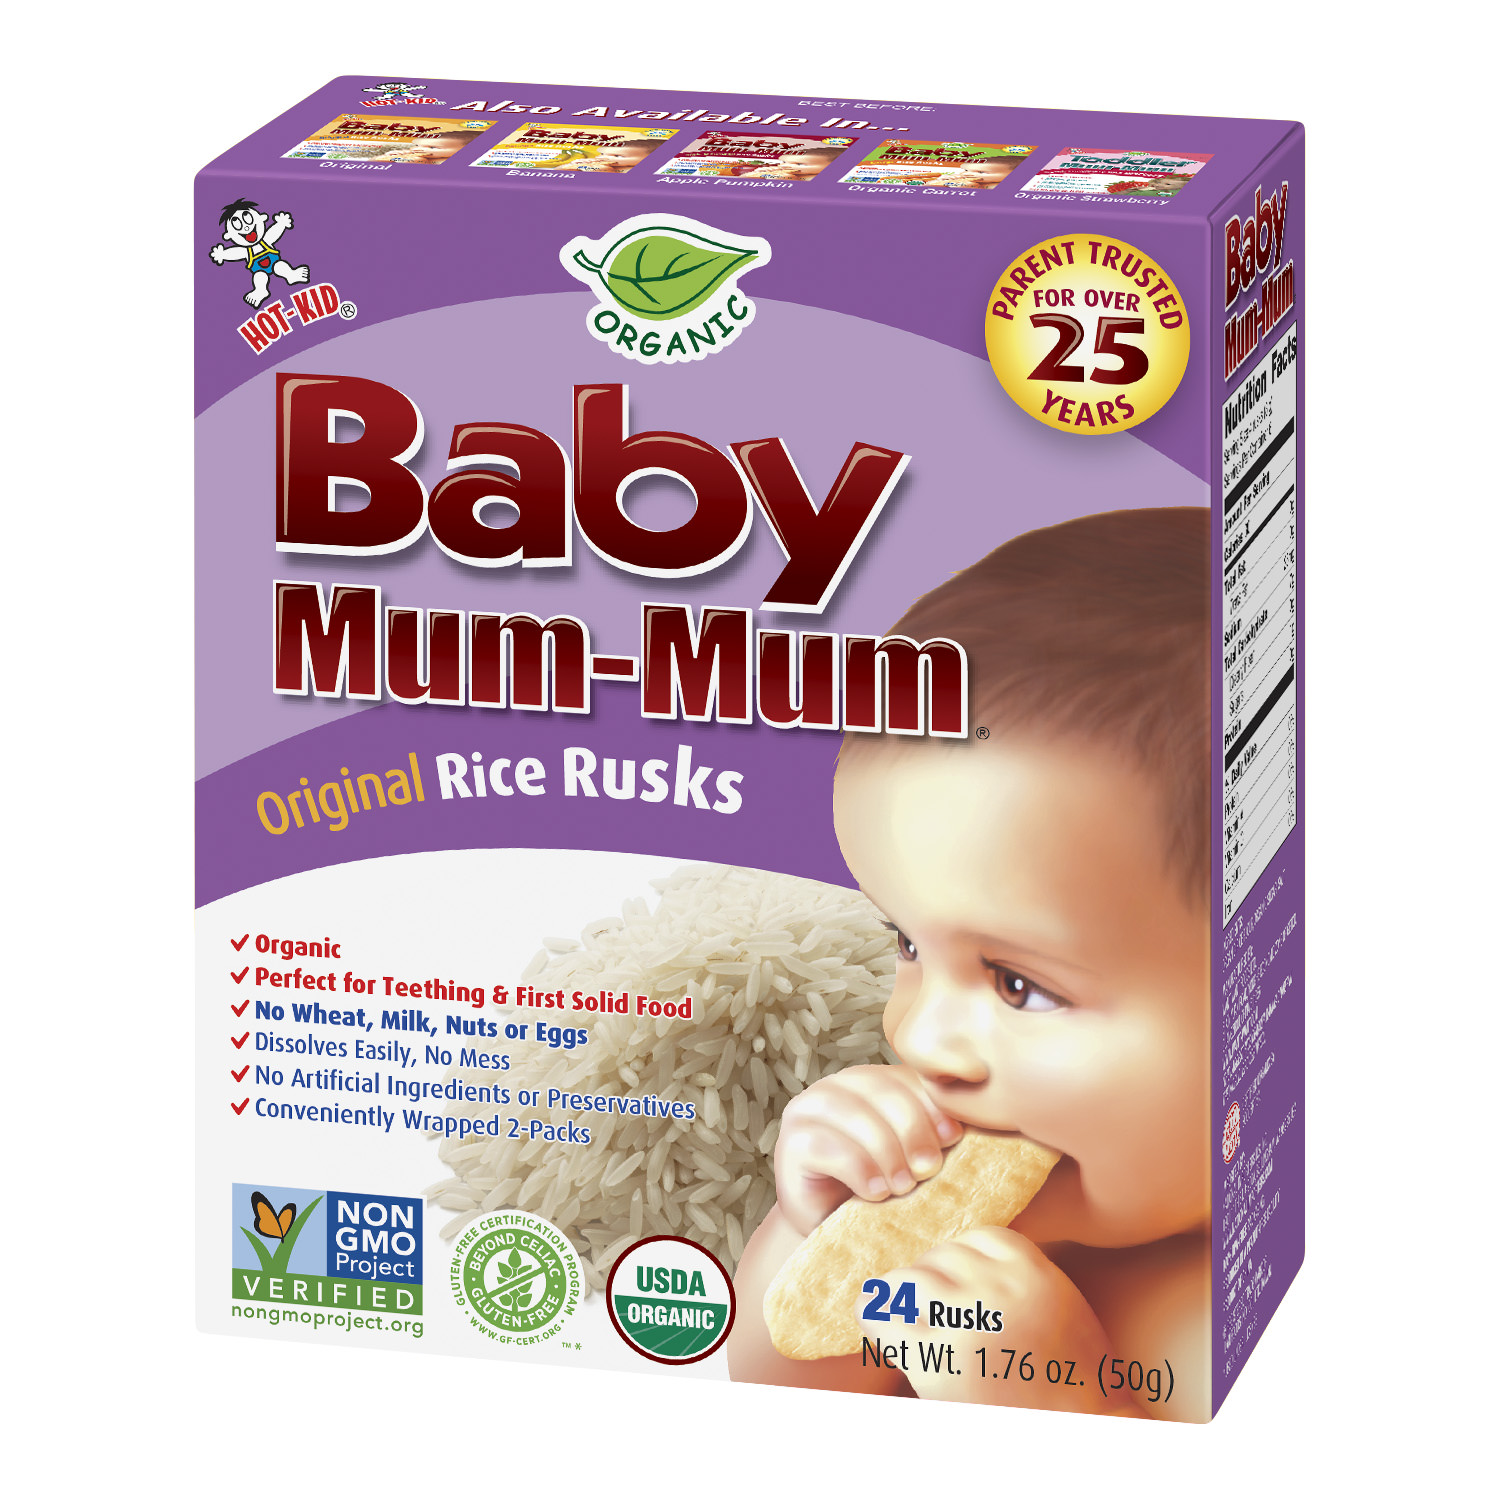 Hot Kid Baby Mum-Mum Organic Original Rice Rusks, 24 count, 1.76 oz